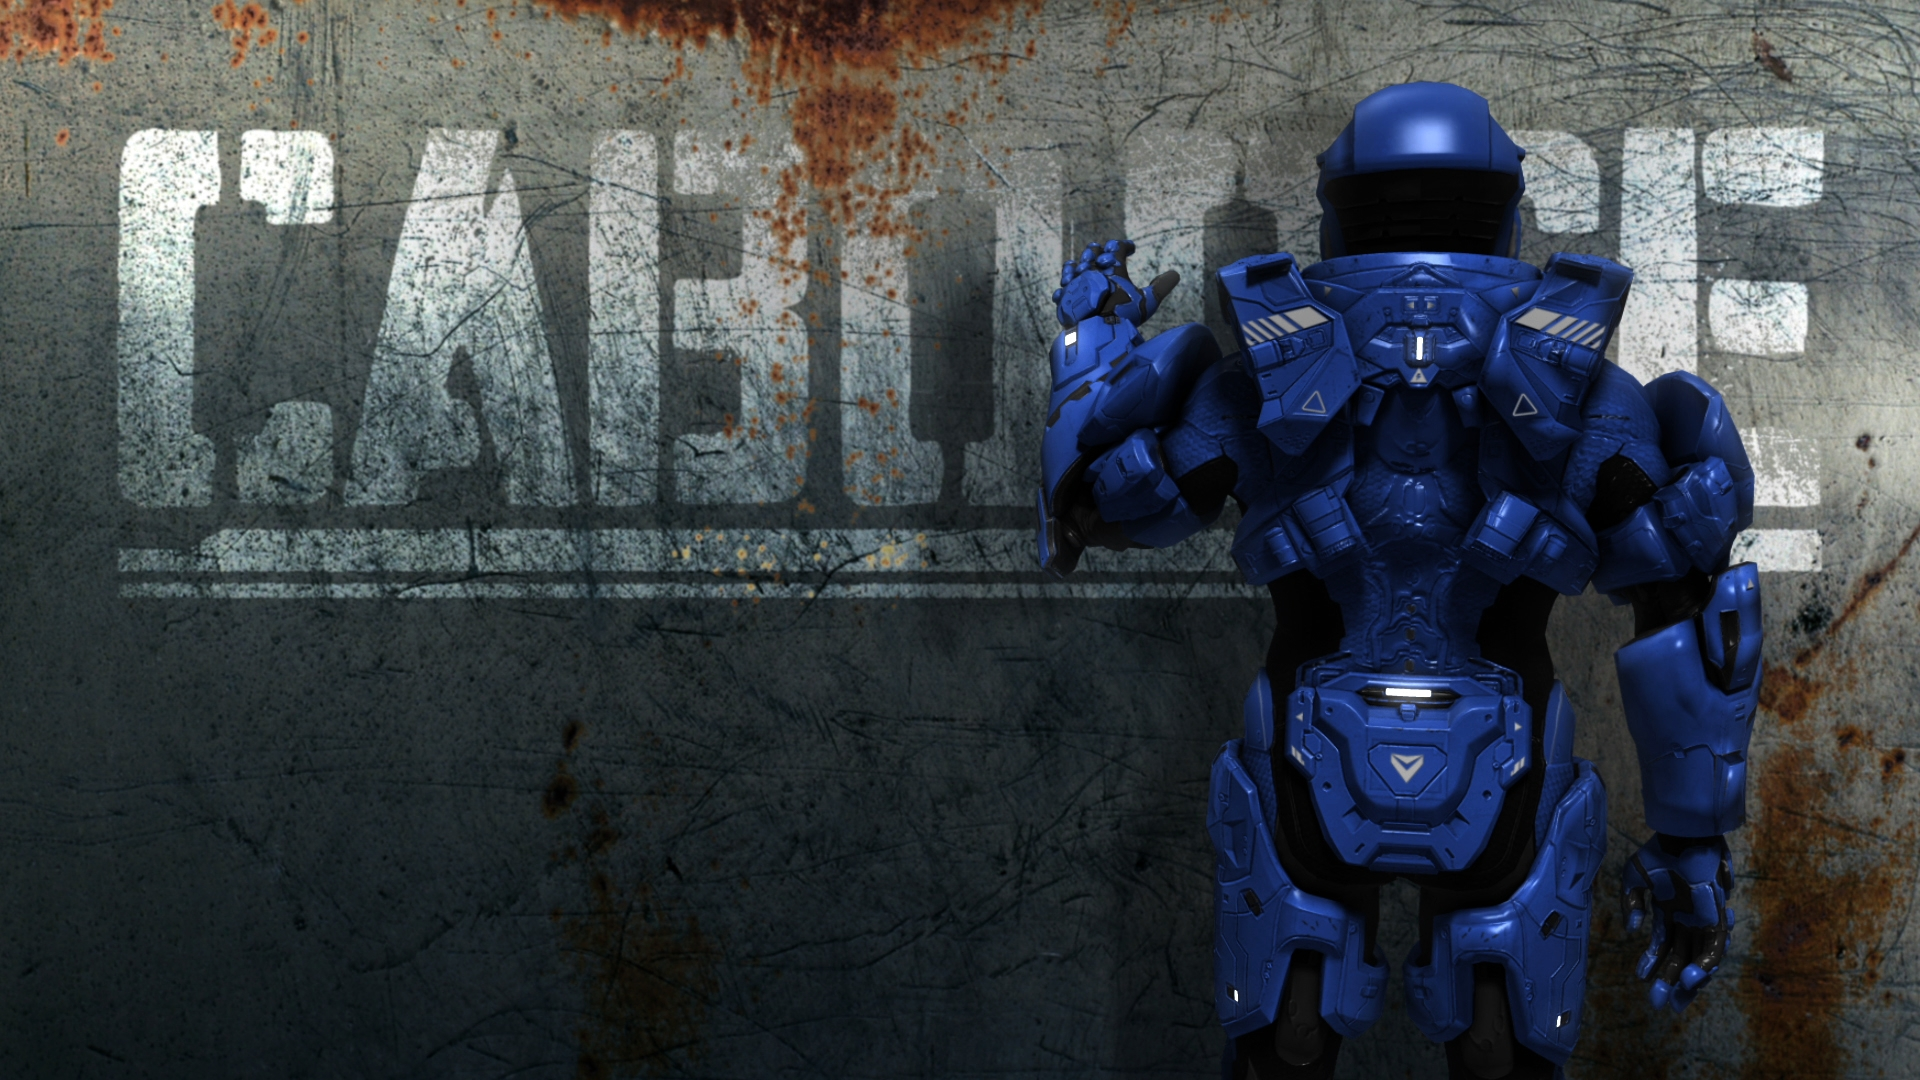 red vs blue wallpapers, 40 widescreen hd wallpapers of red vs blue